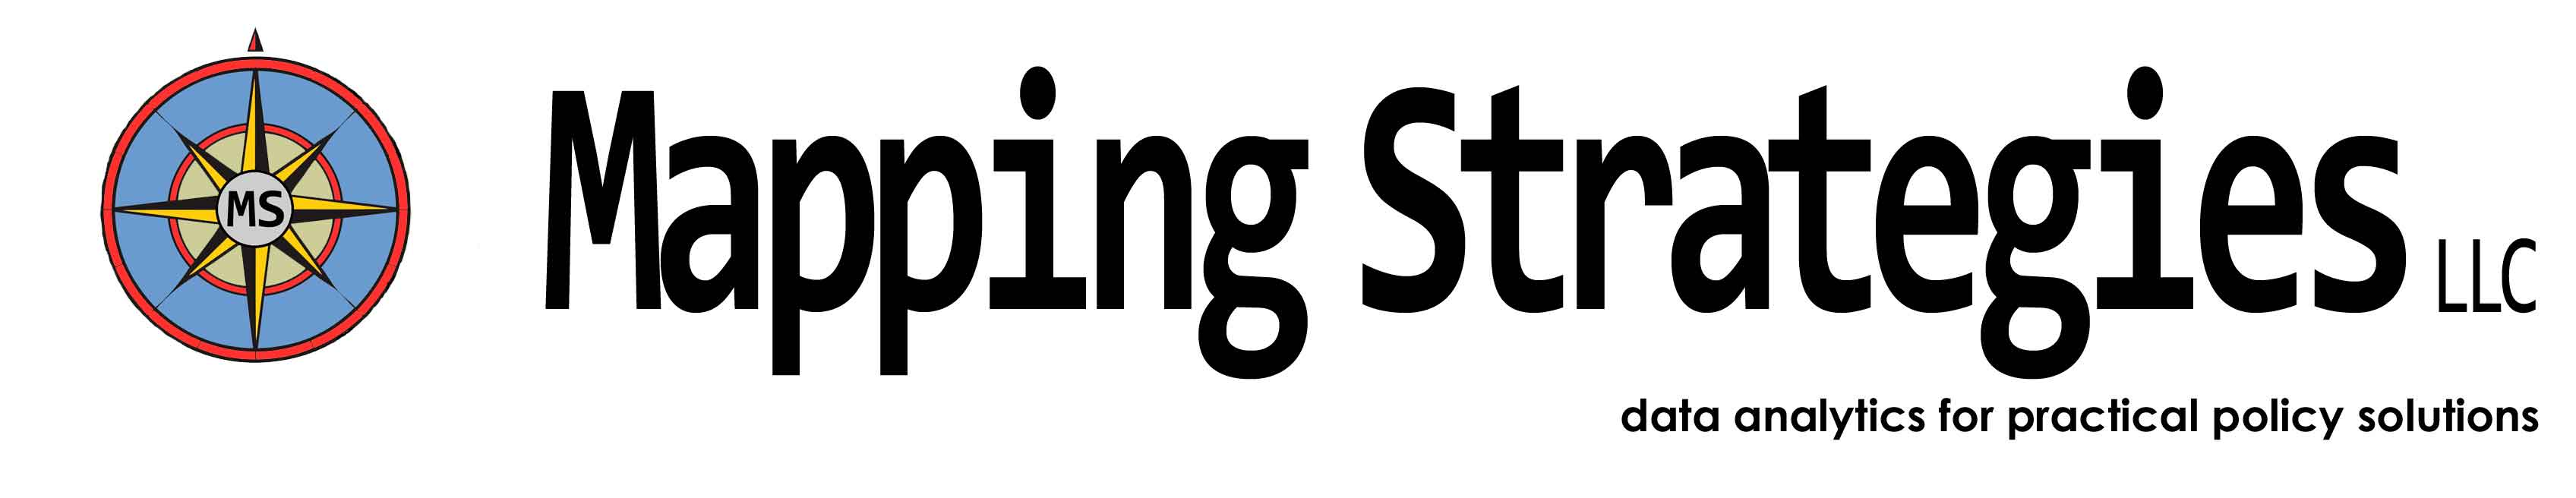 Mapping Strategies LLC Logo